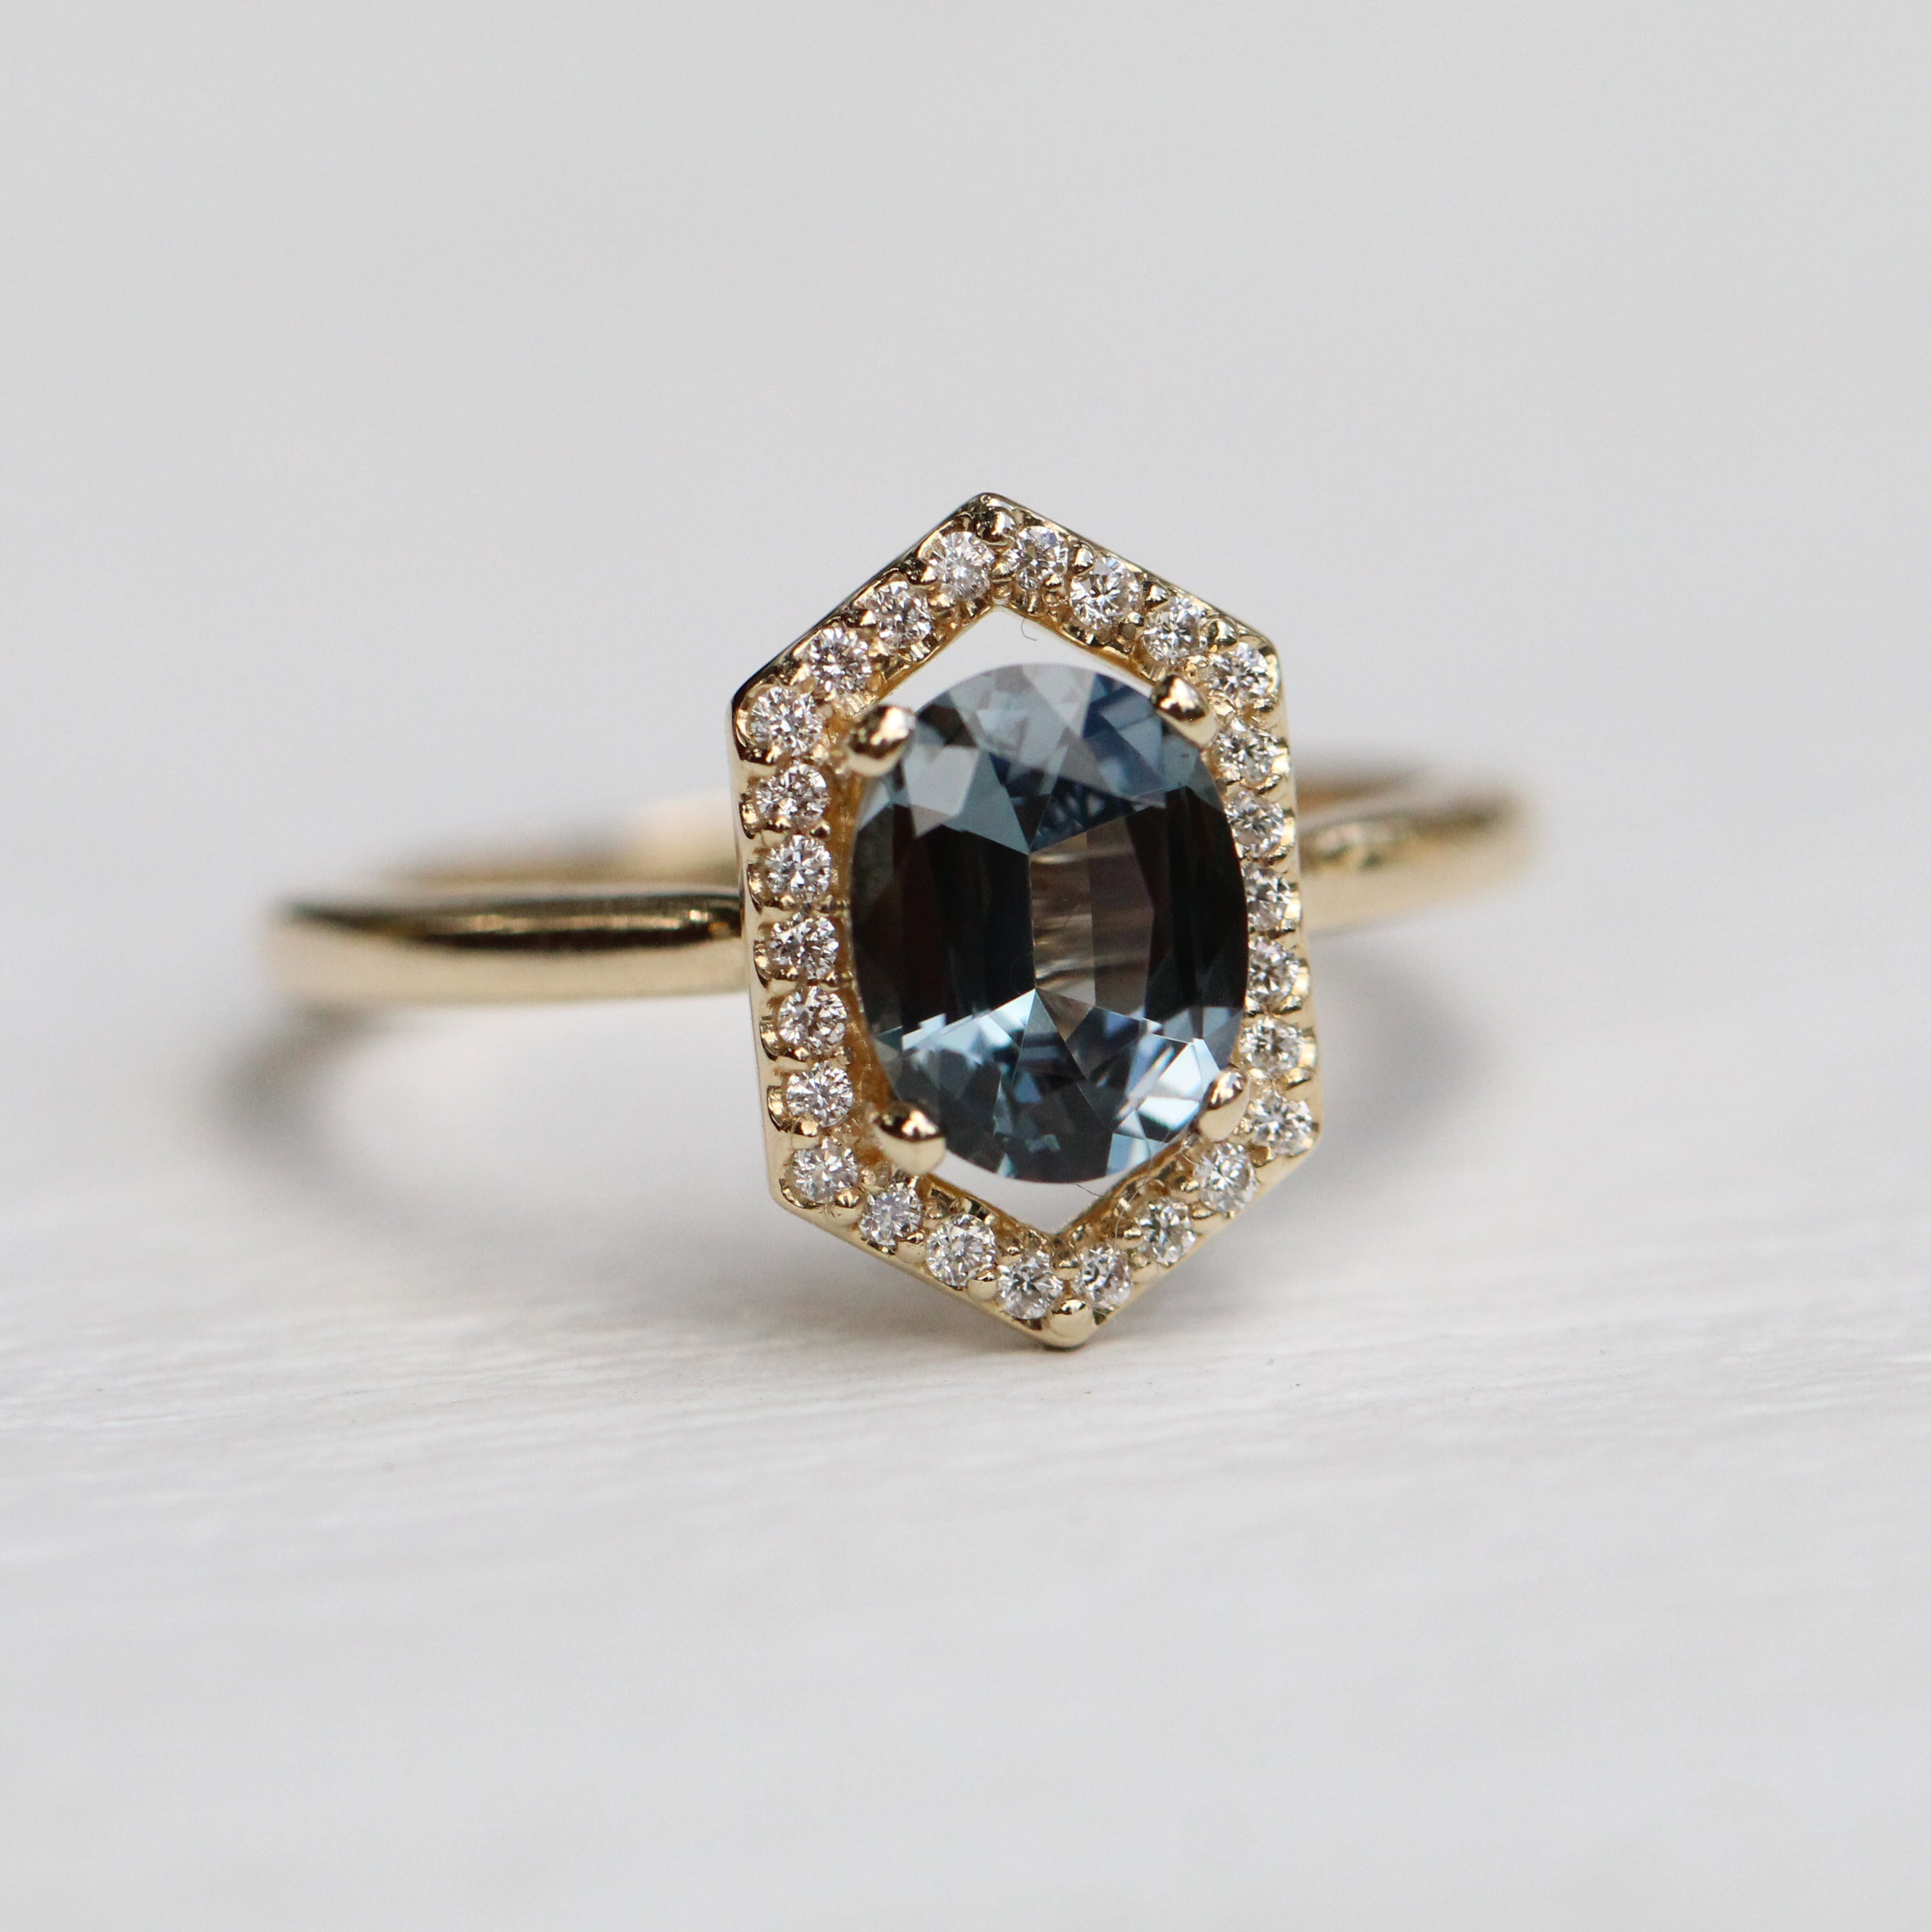 Etta Ring with a 1.25 Carat Oval Spinel and Diamond Halo in 14k Yellow Gold - Ready to Size and Ship - Midwinter Co. Alternative Bridal Rings and Modern Fine Jewelry